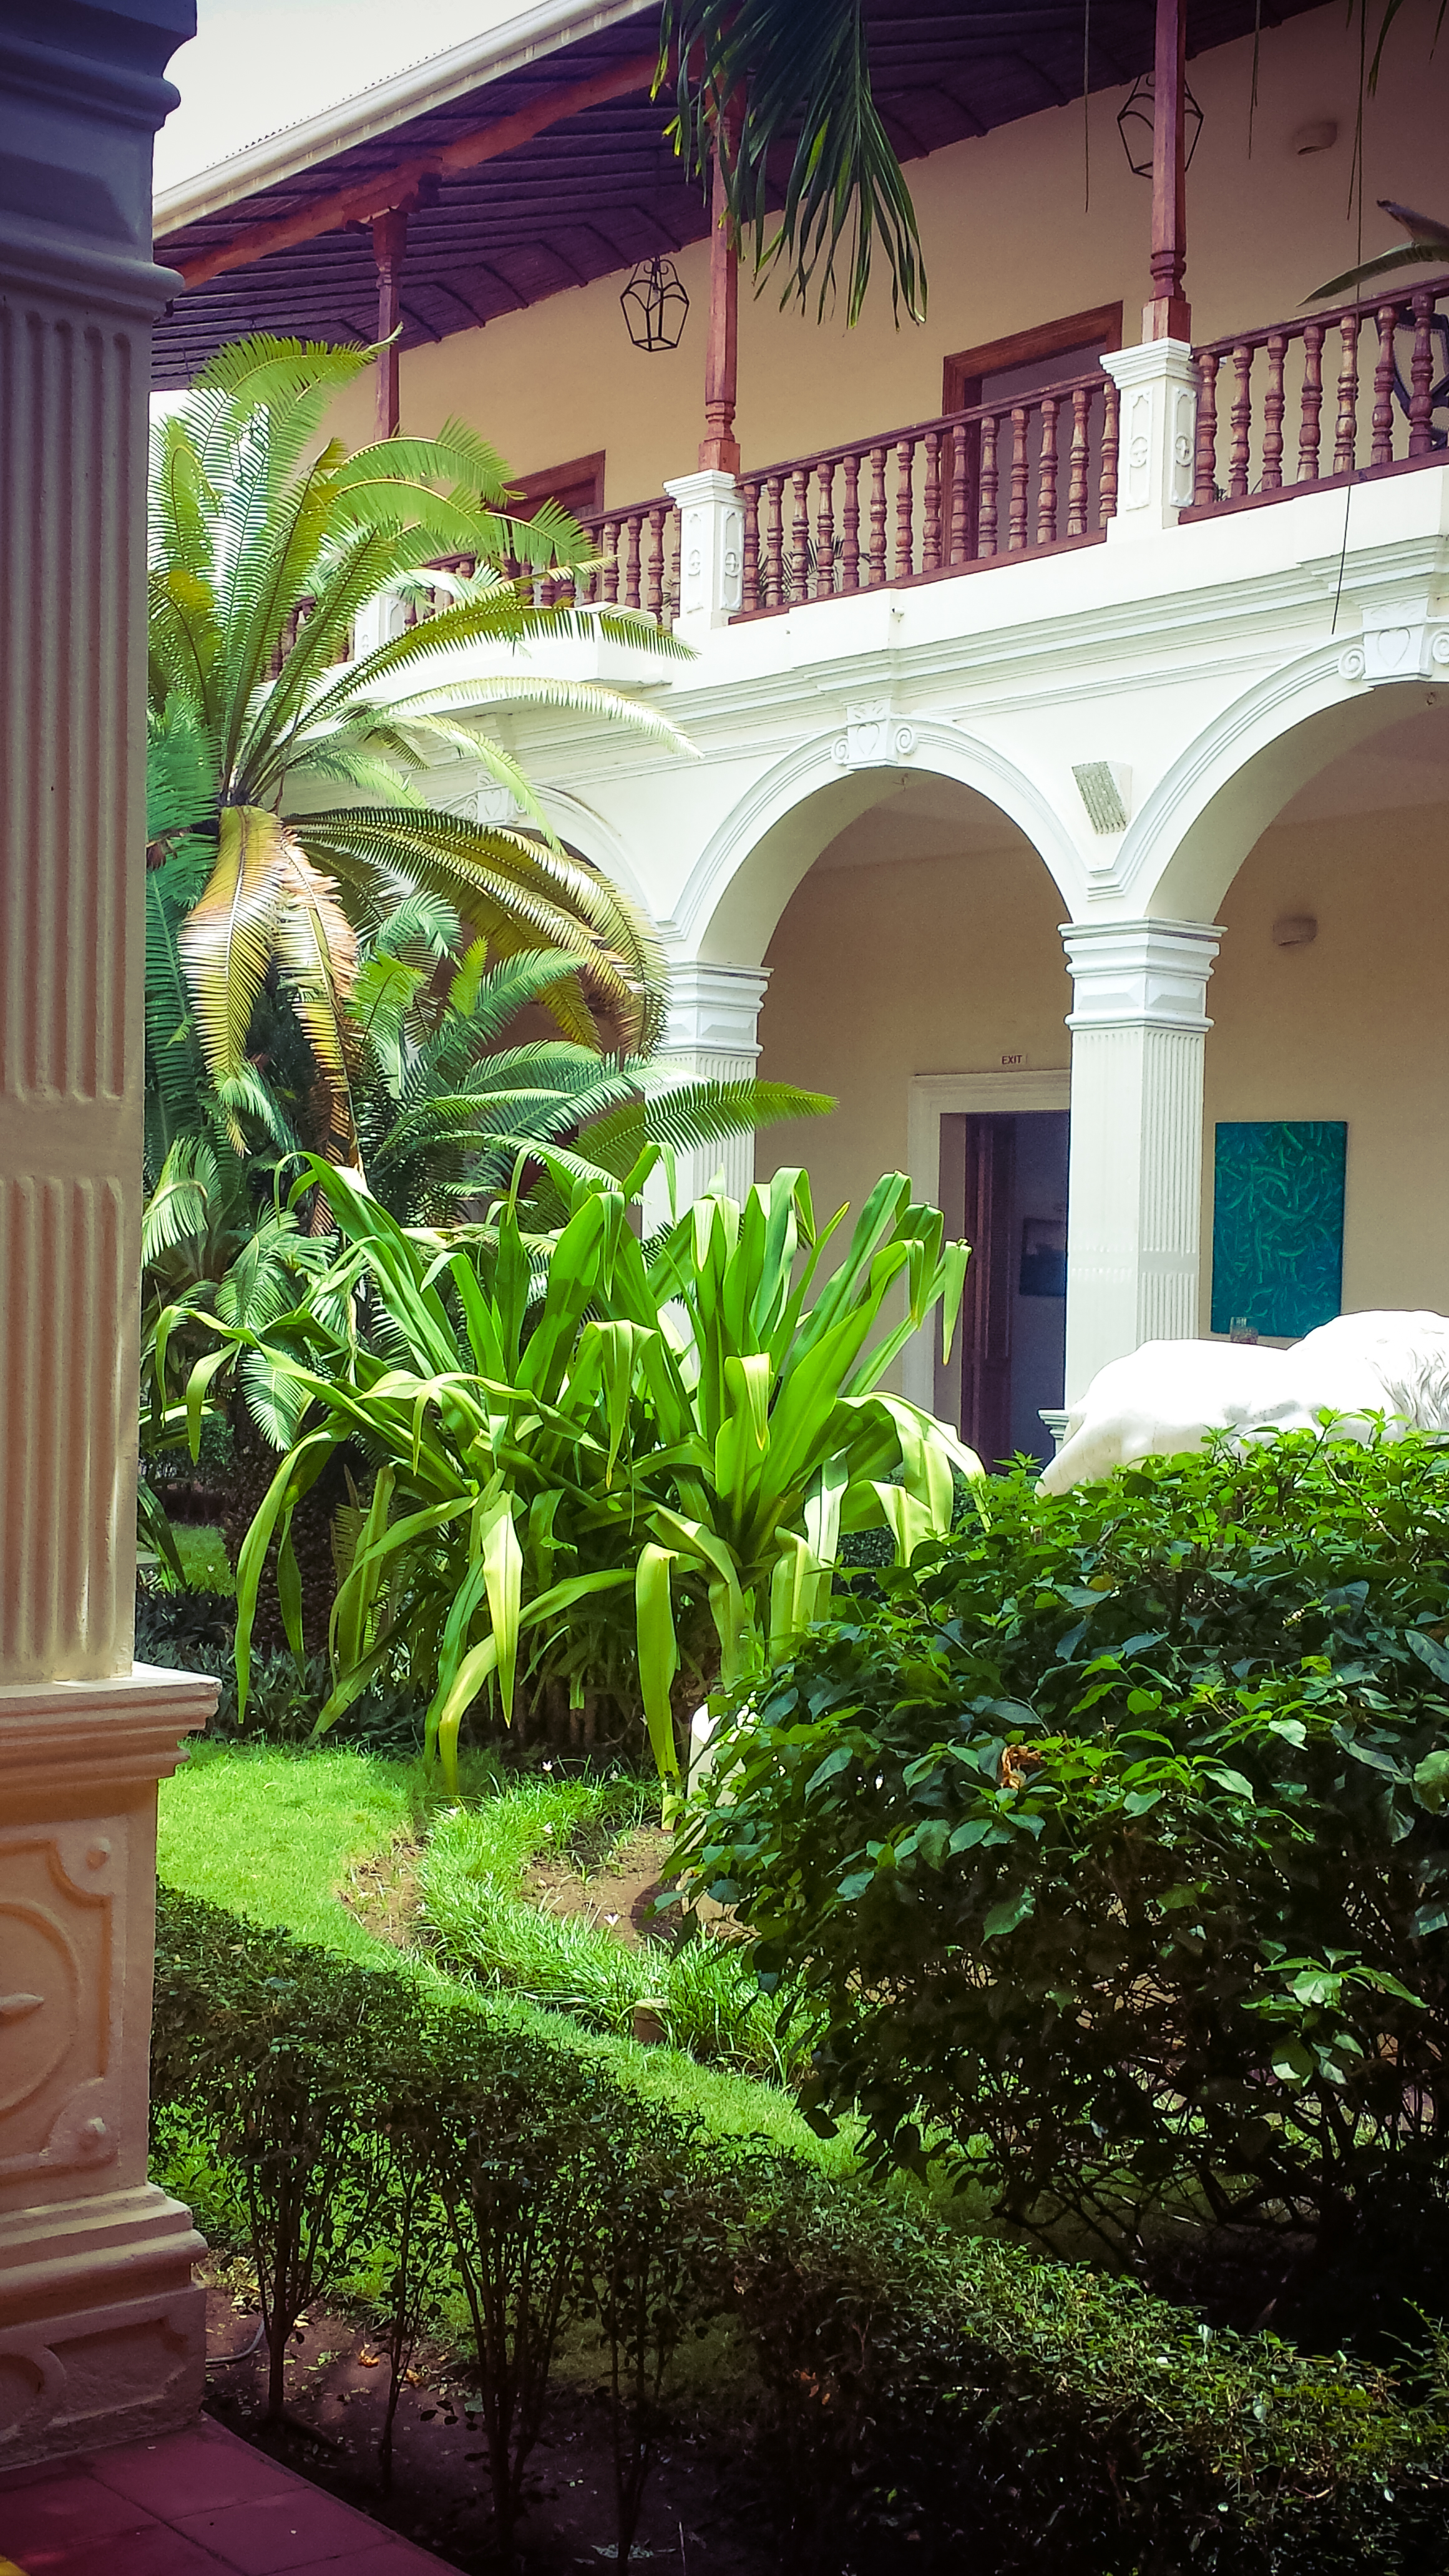 One of the courtyards in Hotel La Perla